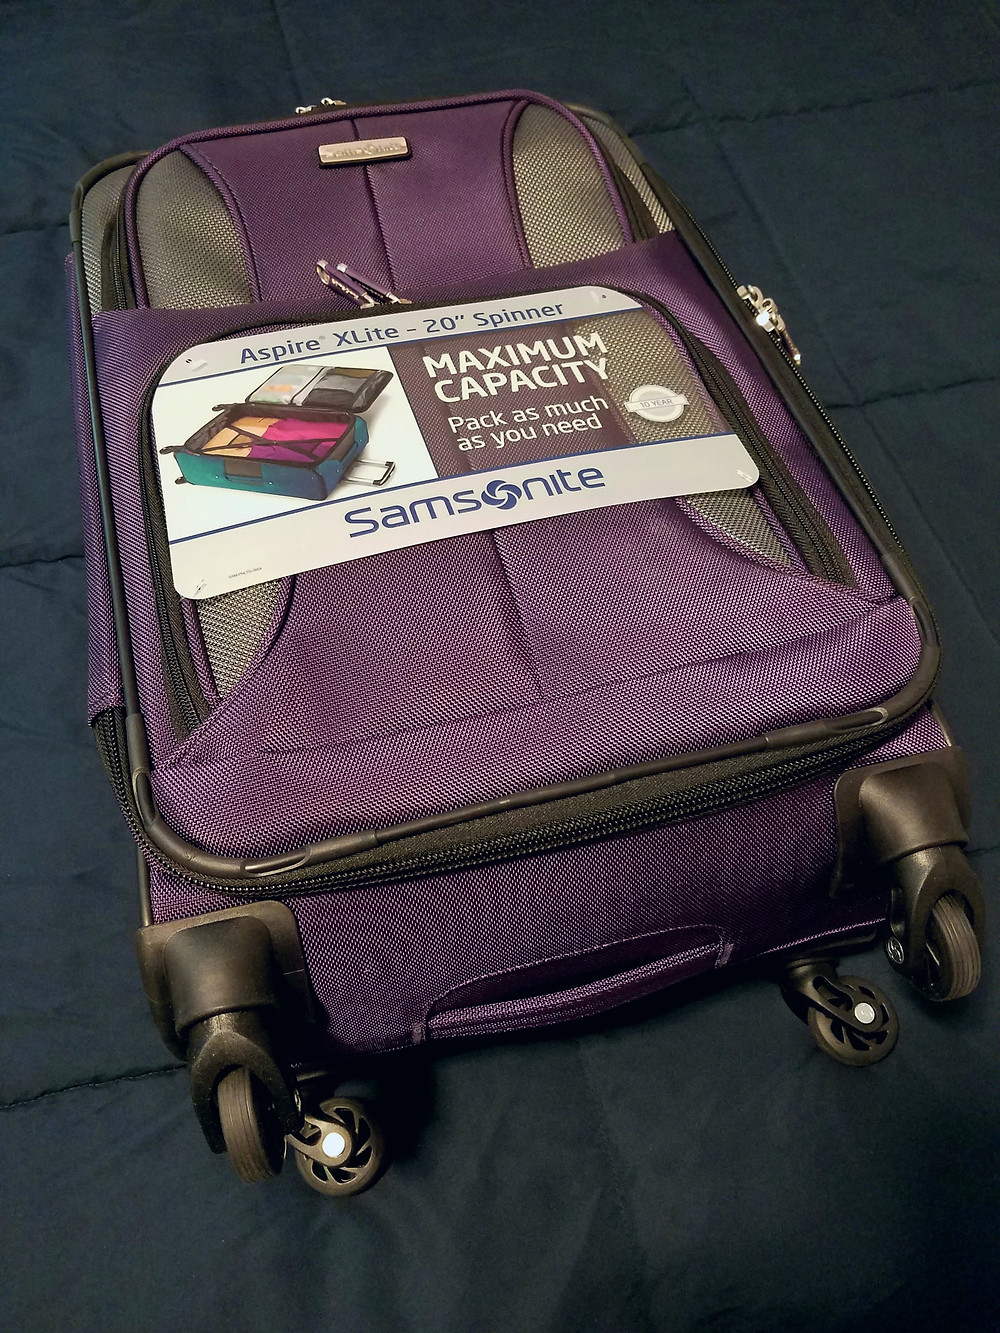 Samsonite Aspire spinner suitcase